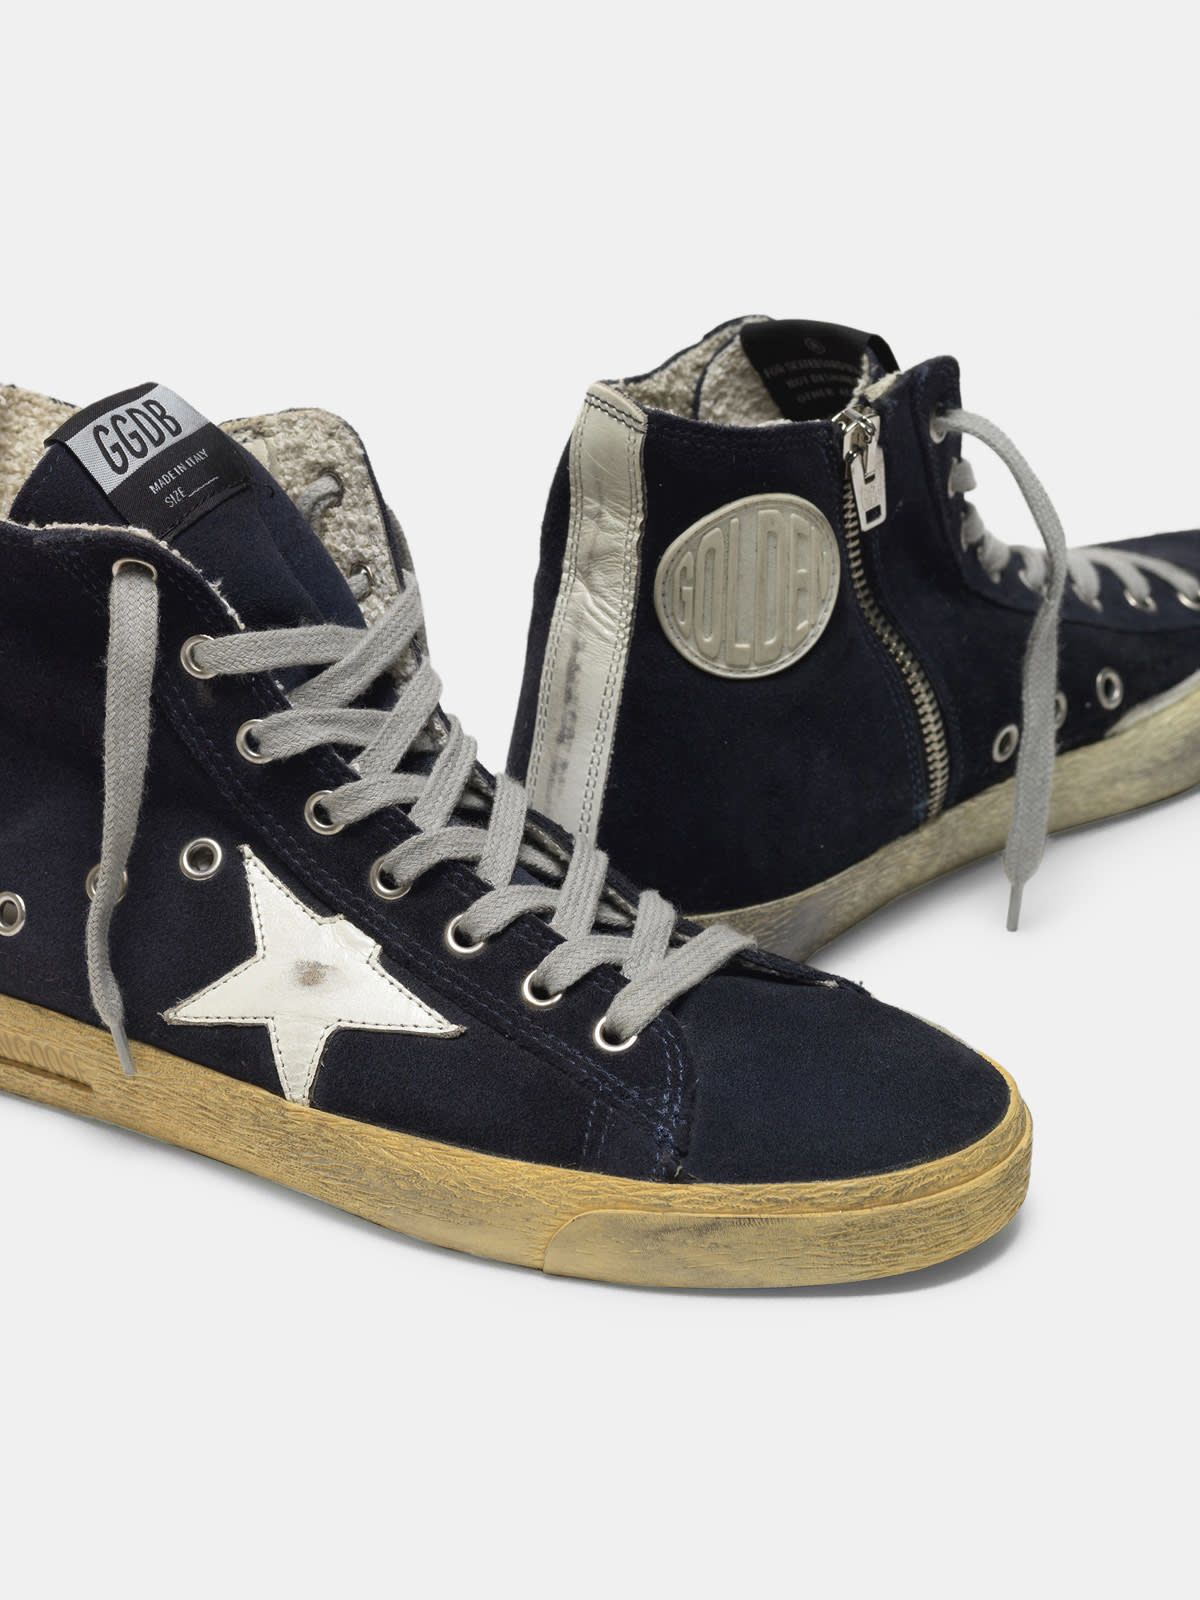 Francy sneakers in suede with leather star